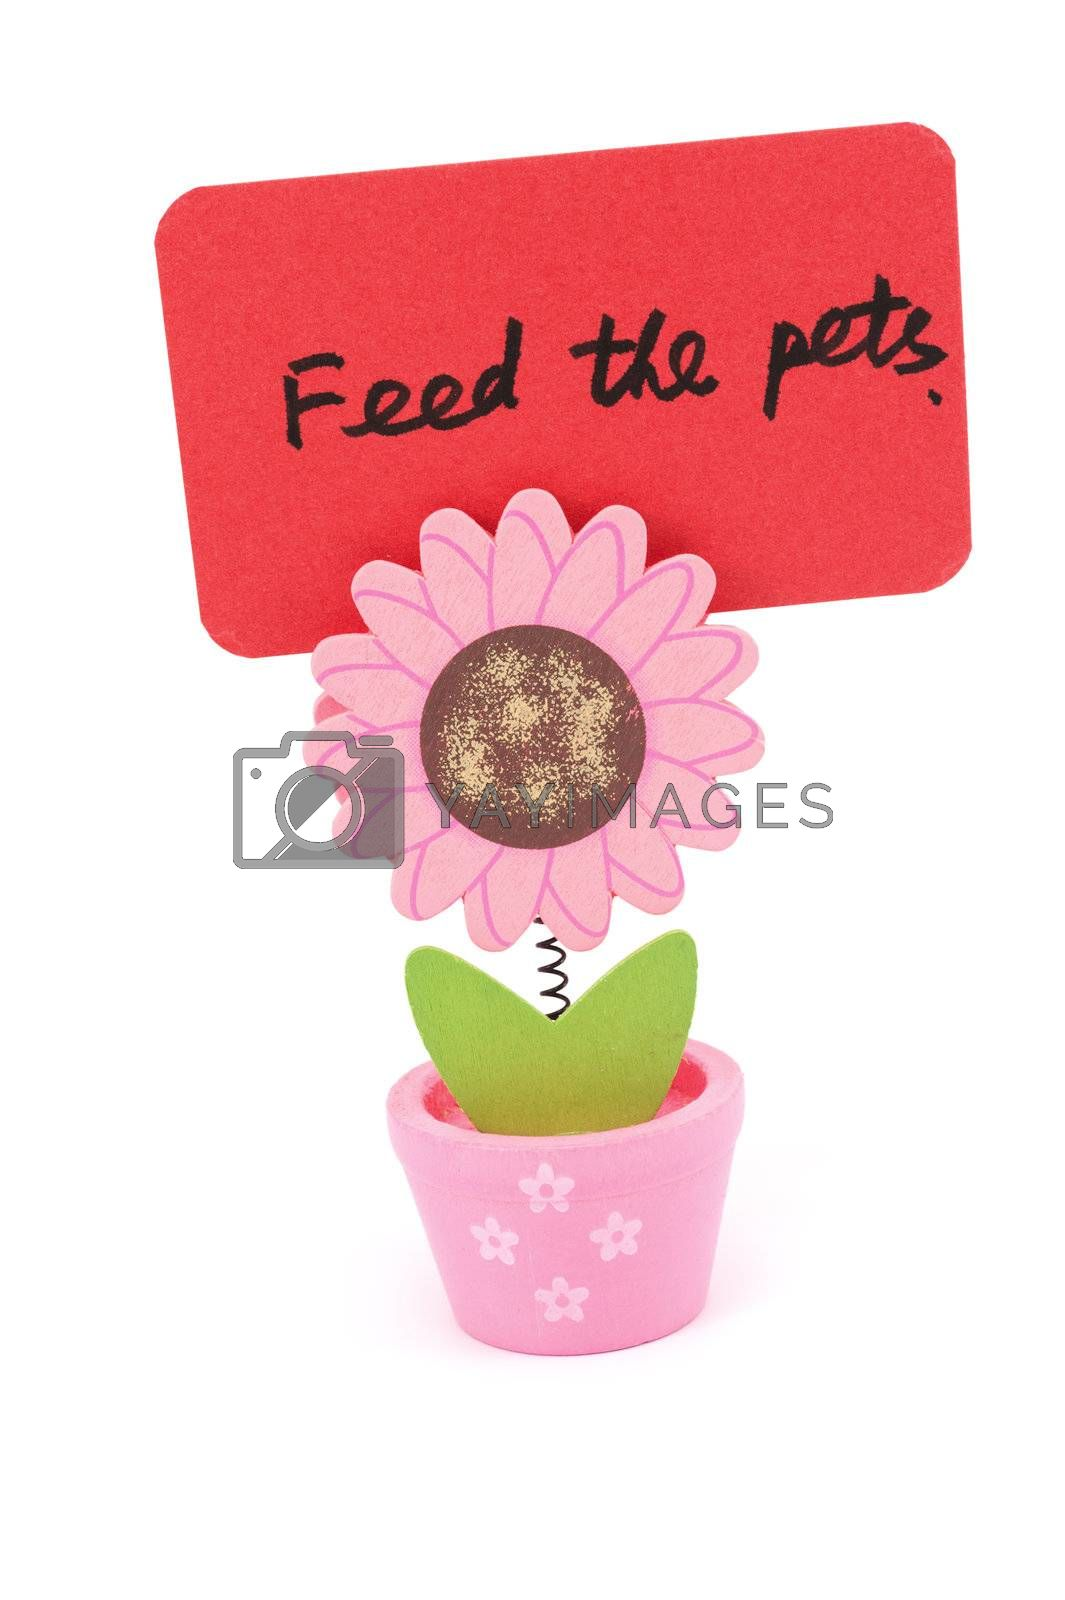 Feed the pets words written on red paper of sun flower pot clip